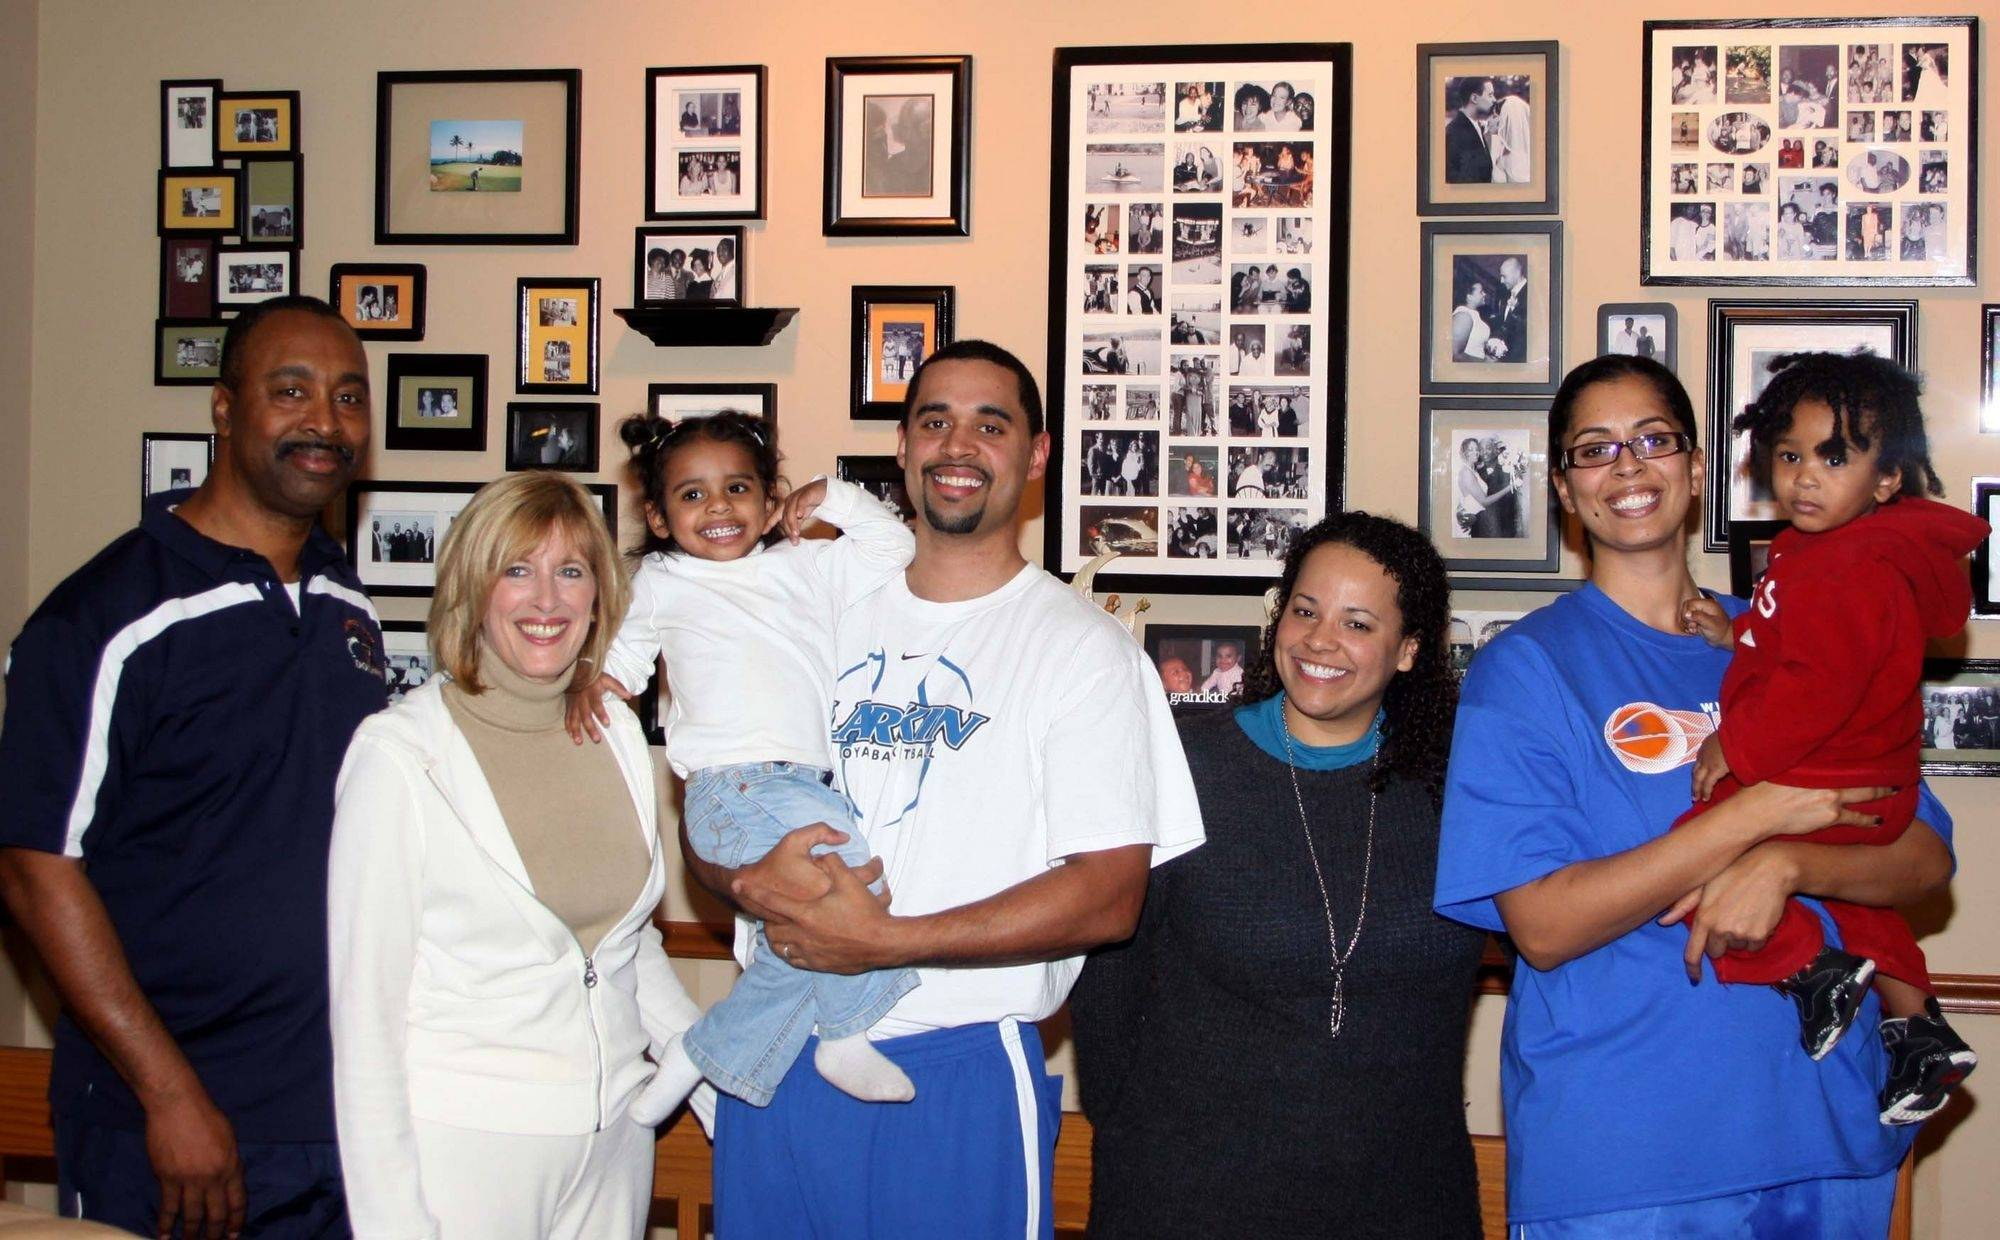 Deryl and Marlene Carter, left, pose with their three children and two grandchildren at their Elgin home. From left, Deryl, Marlene, Mia with her dad Deryn, Katy Potts, and Corry Irvin with her son Mac. Corry is head girls basketball coach at Whitney Young High School, and Deryn is head boys basketball coach at Larkin High School.